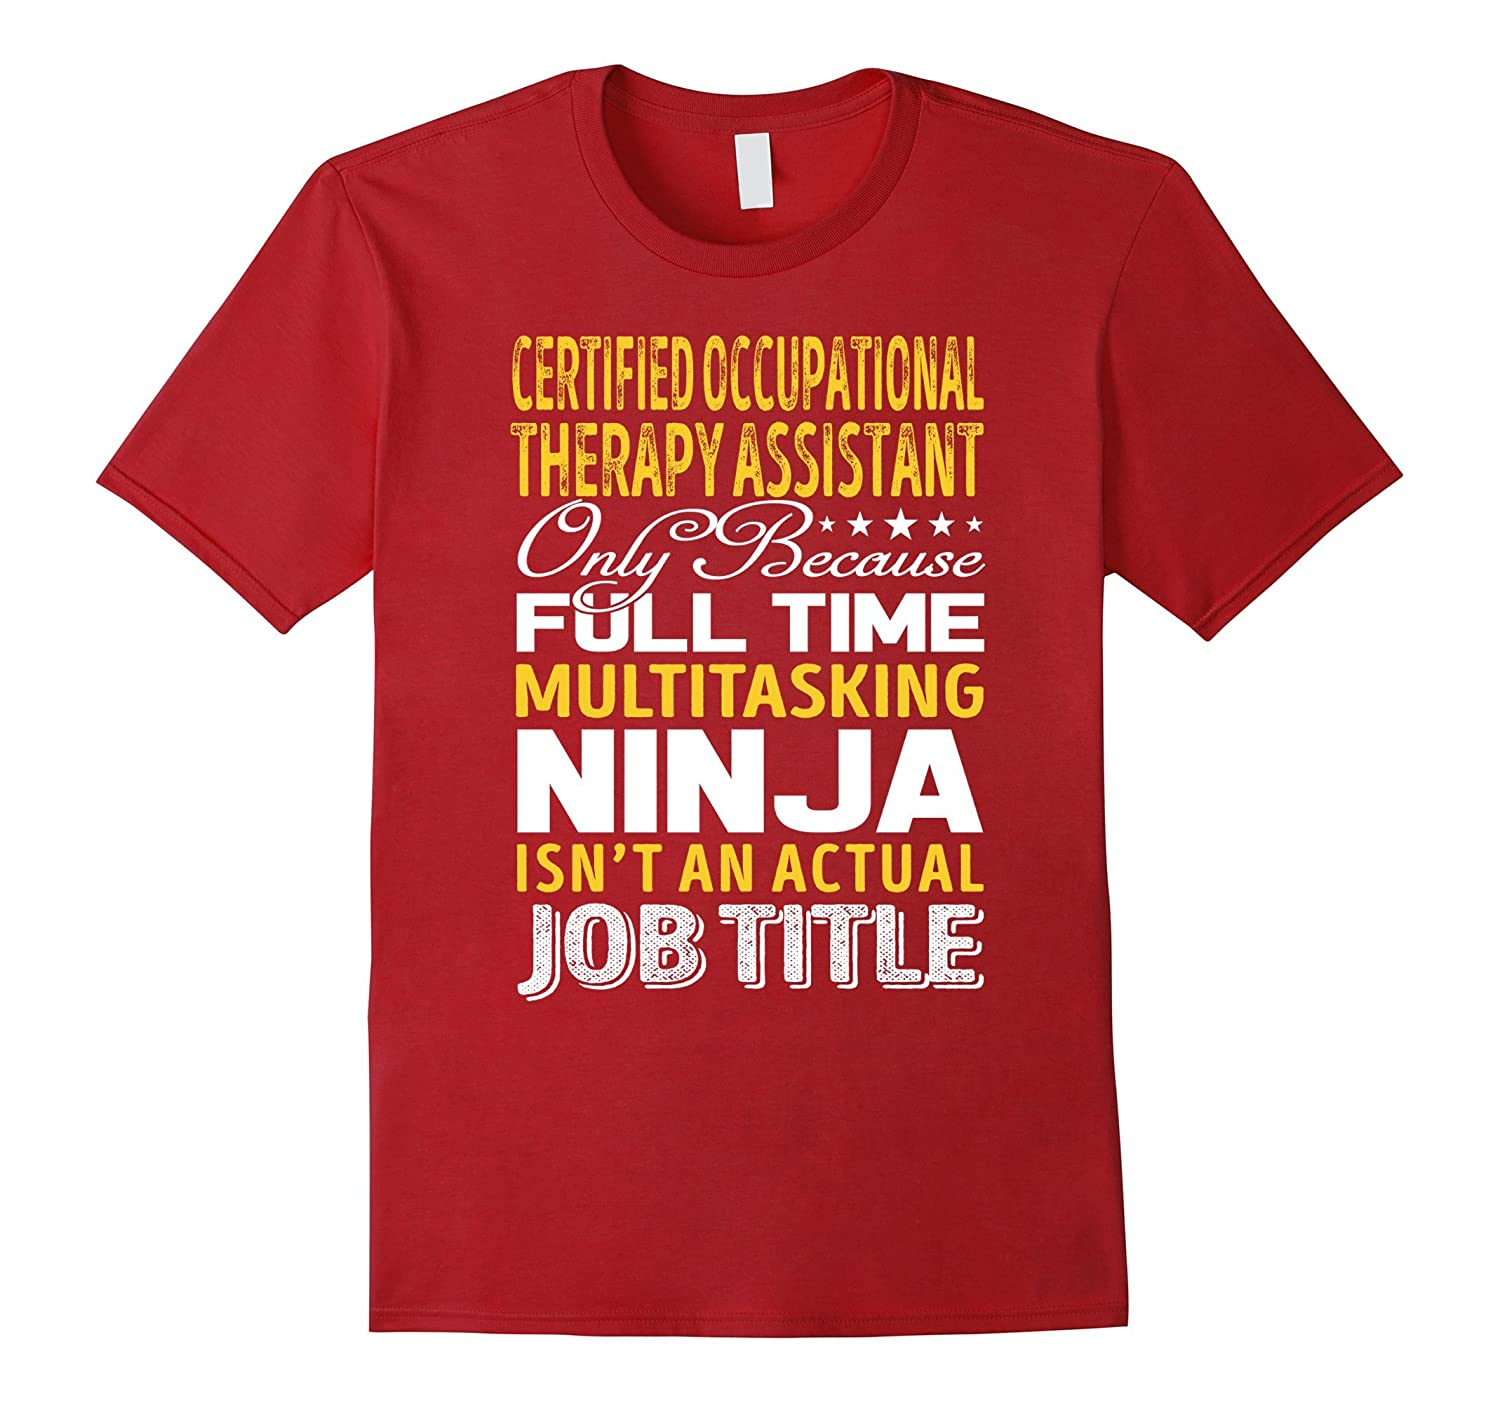 Certified Occupational Therapy Assistant Job Title TShirt-TJ